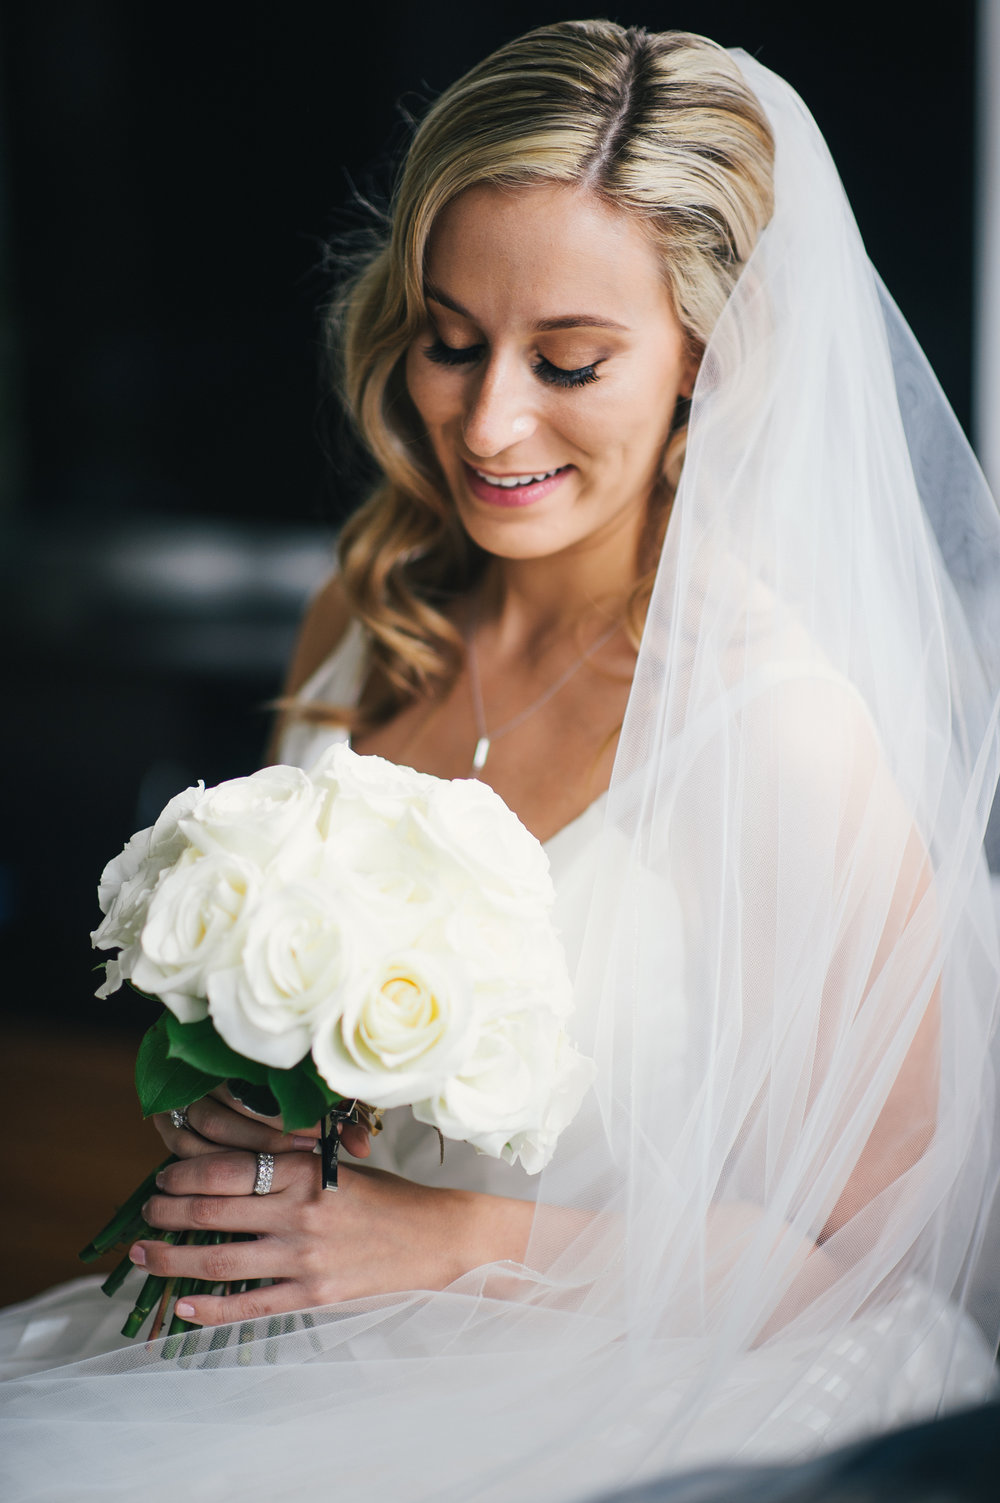 Bride posing for wedding photos in wedding dress with wedding bouquet for black, white, and gold wedding in Buffalo, NY planned by Exhale Events. Find more wedding inspiration at exhale-events.com!